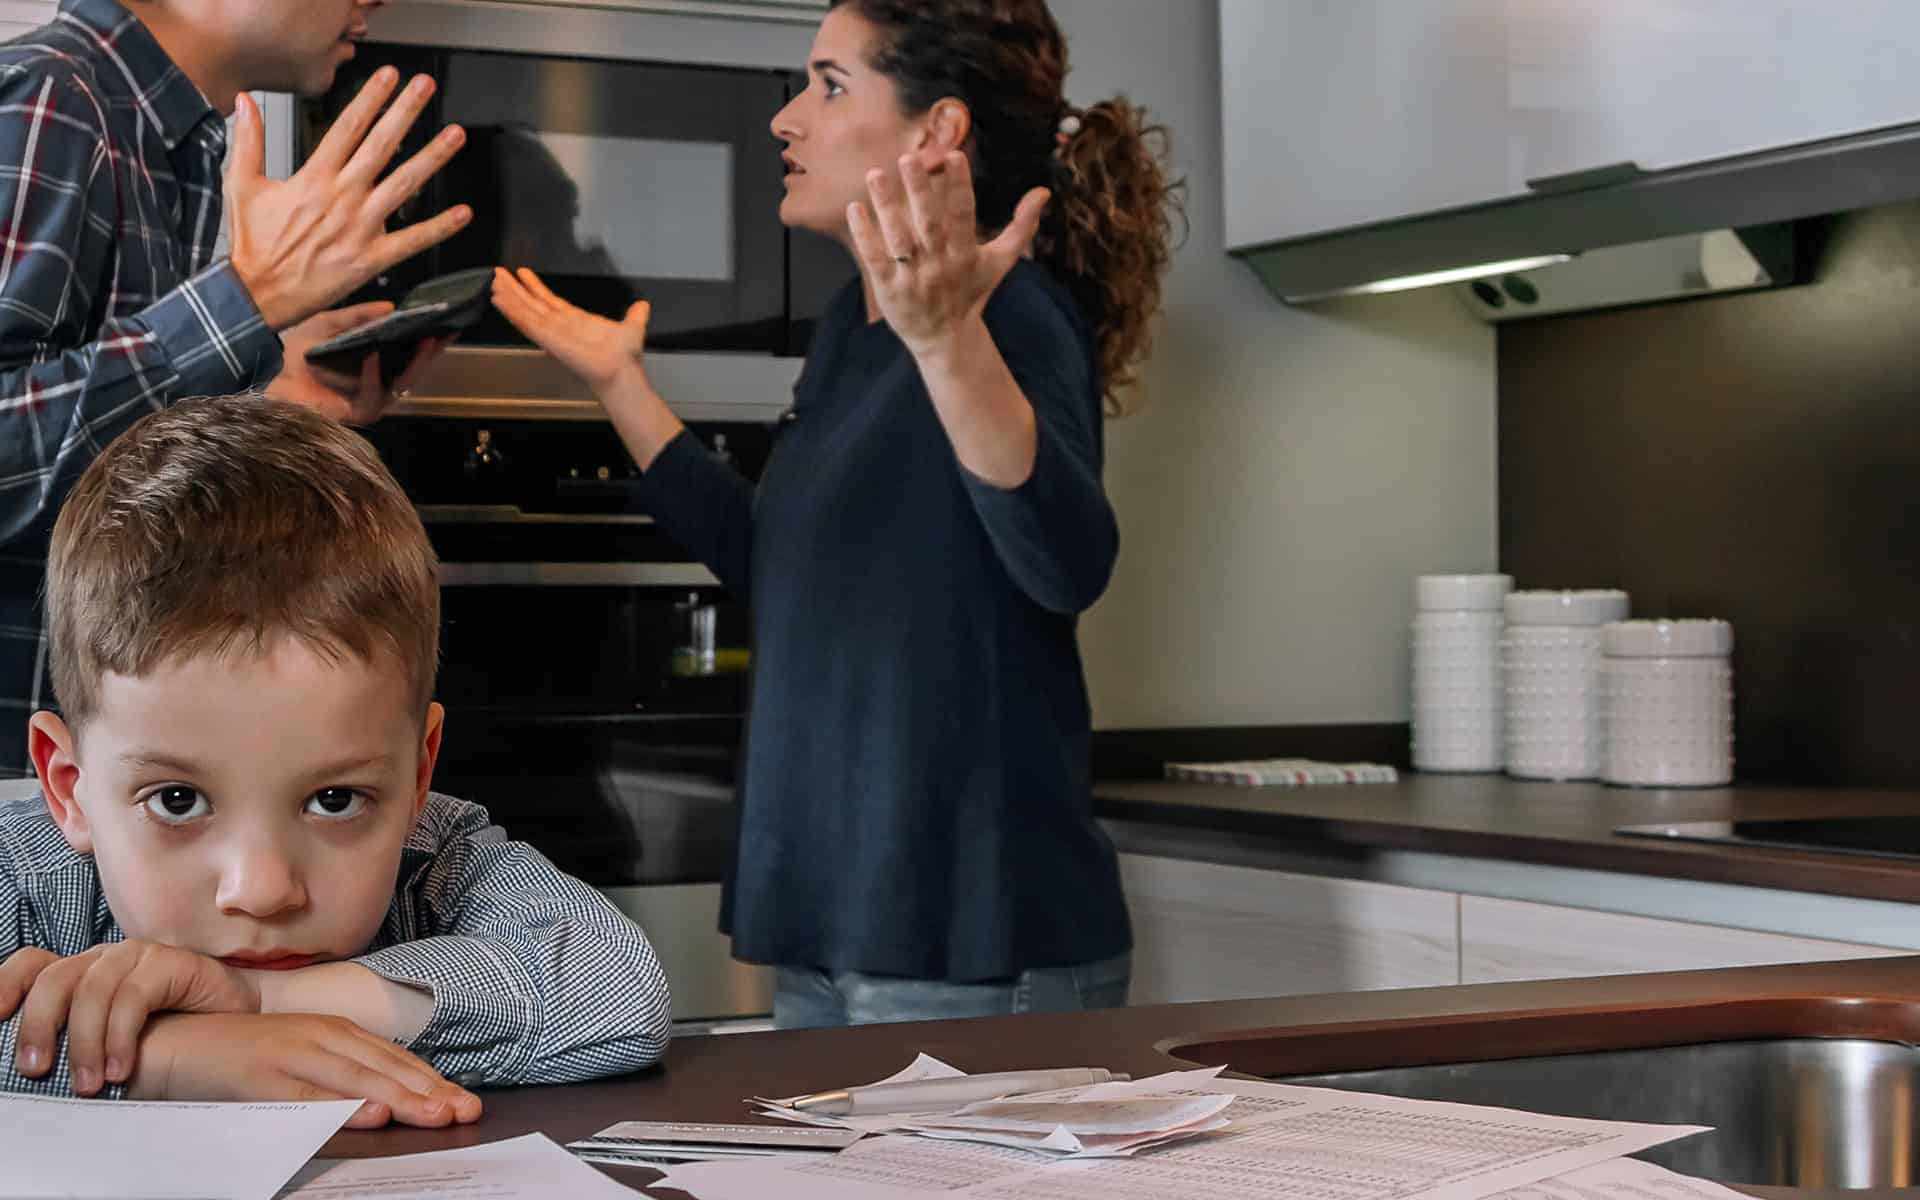 Child Support and Alimony Investigations New York